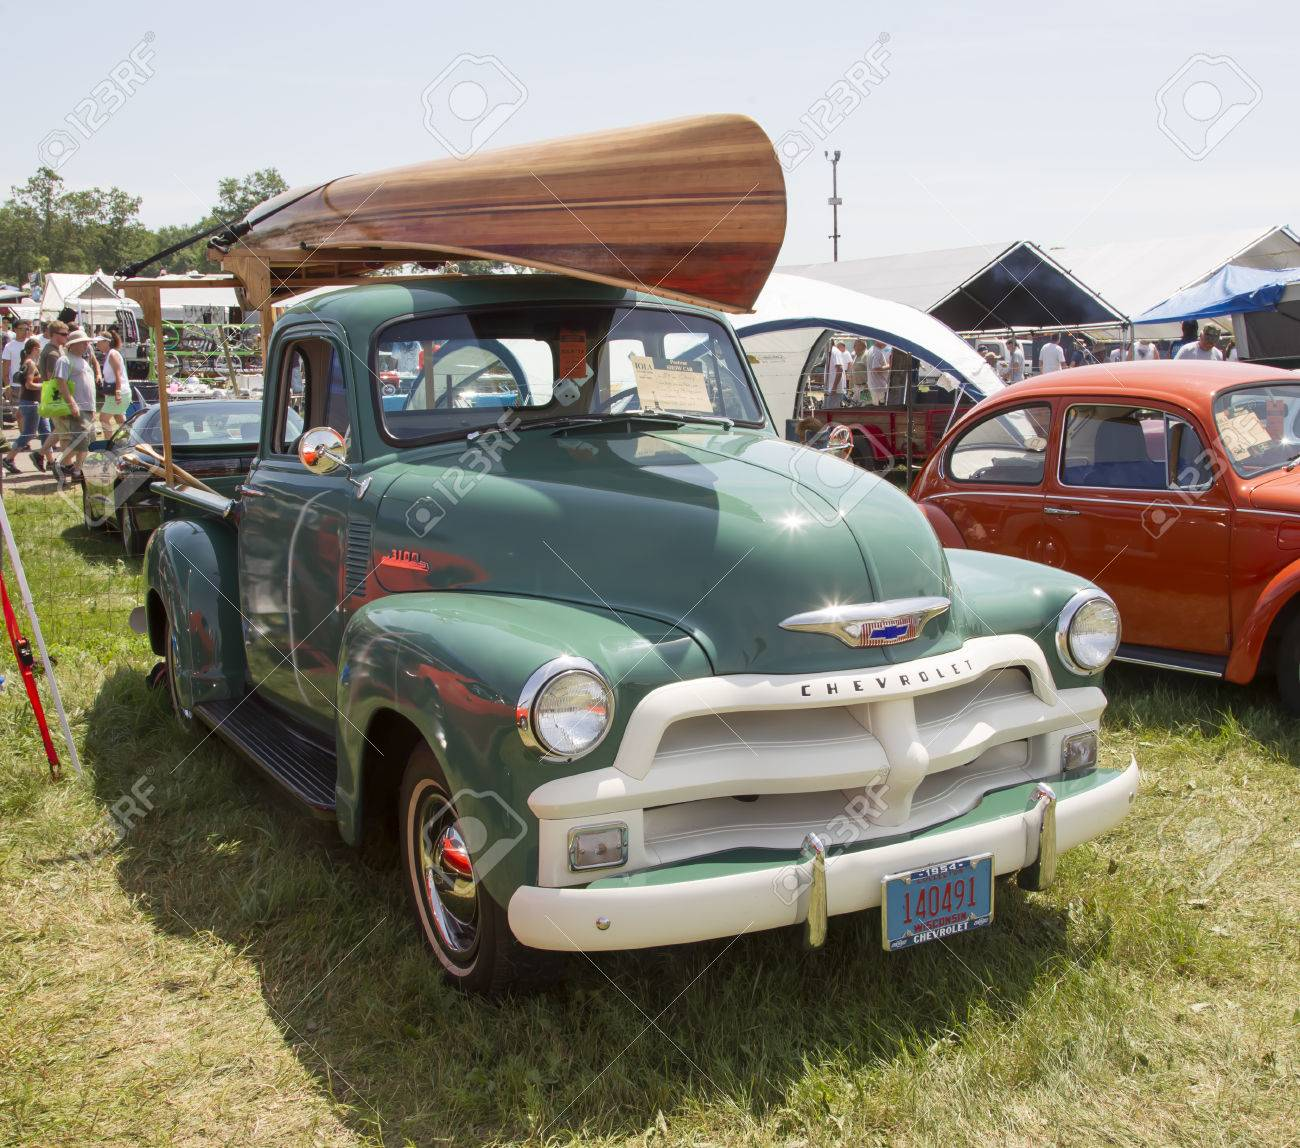 Iola Wi July 13 1954 Chevy 3100 Pickup Truck With Wooden Stock Photo Picture And Royalty Free Image Image 25542531